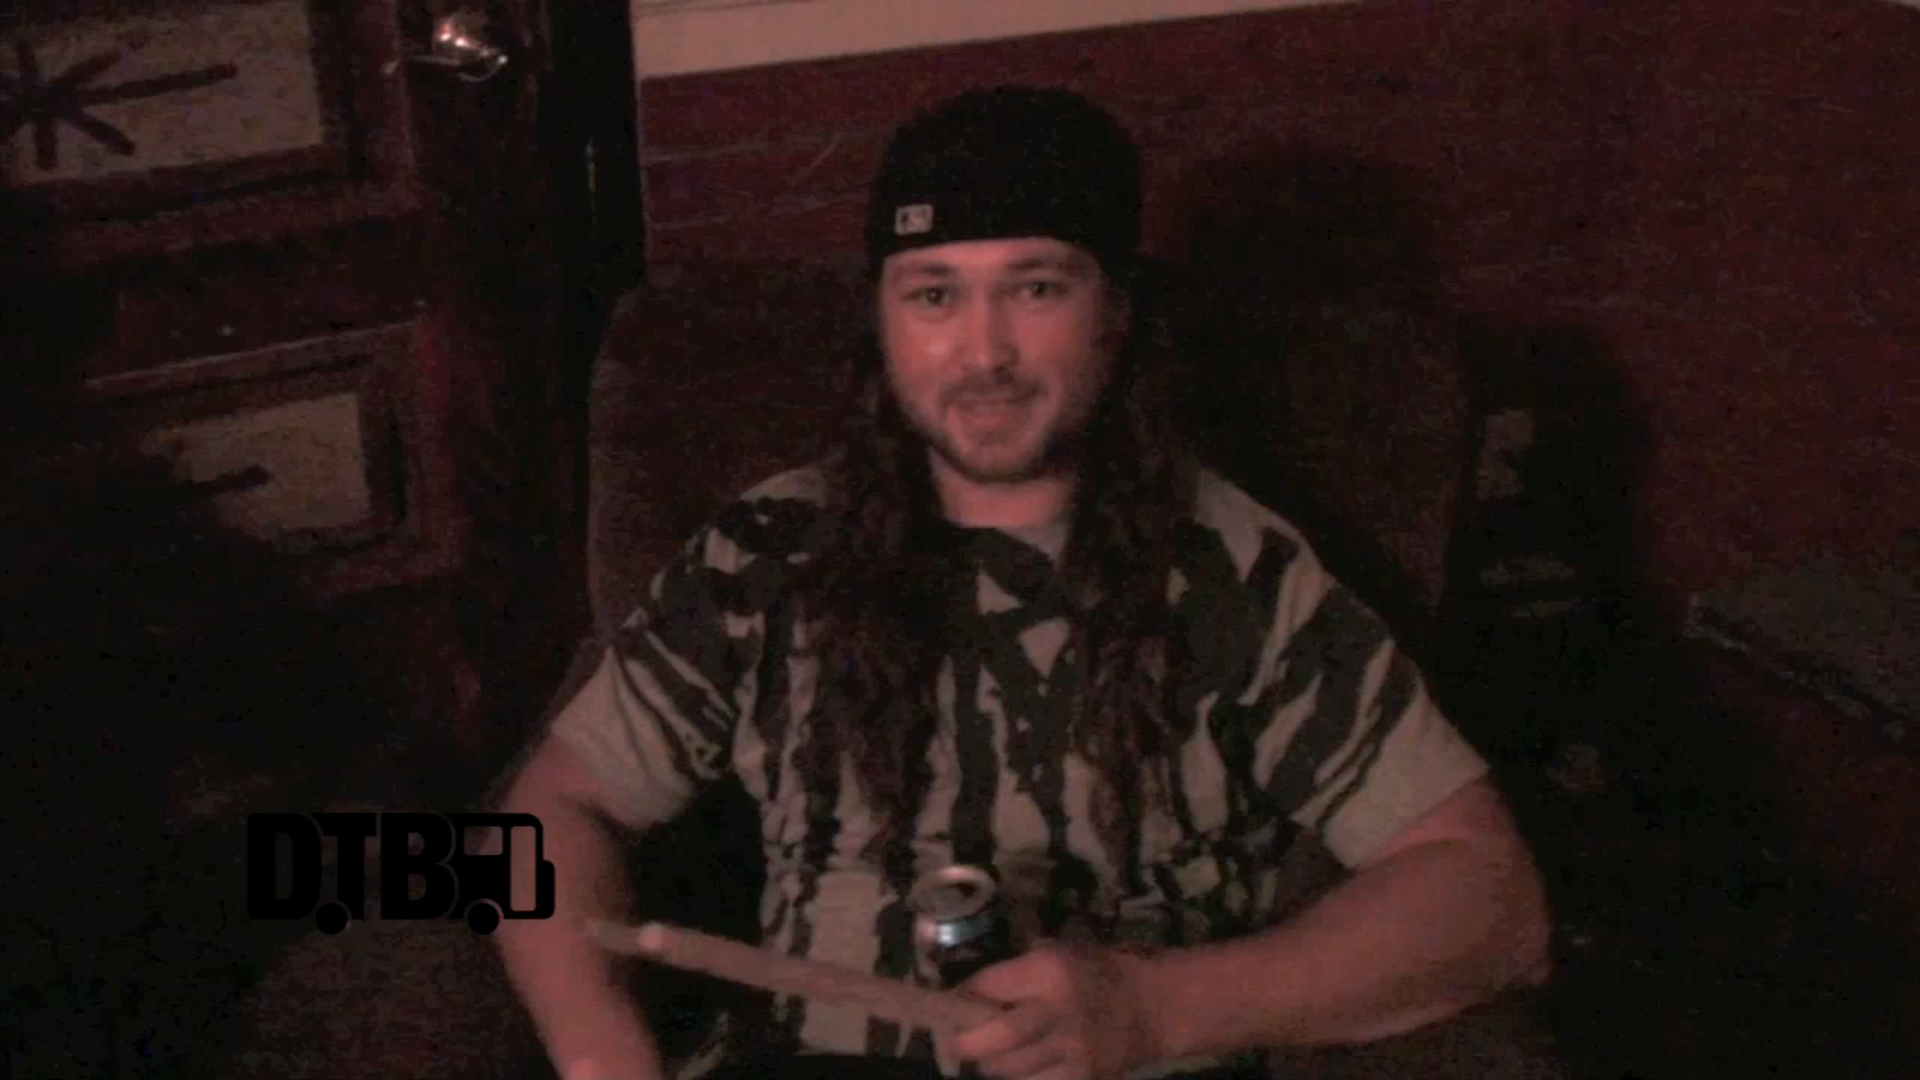 The Devastated – CRAZY TOUR STORIES [VIDEO]